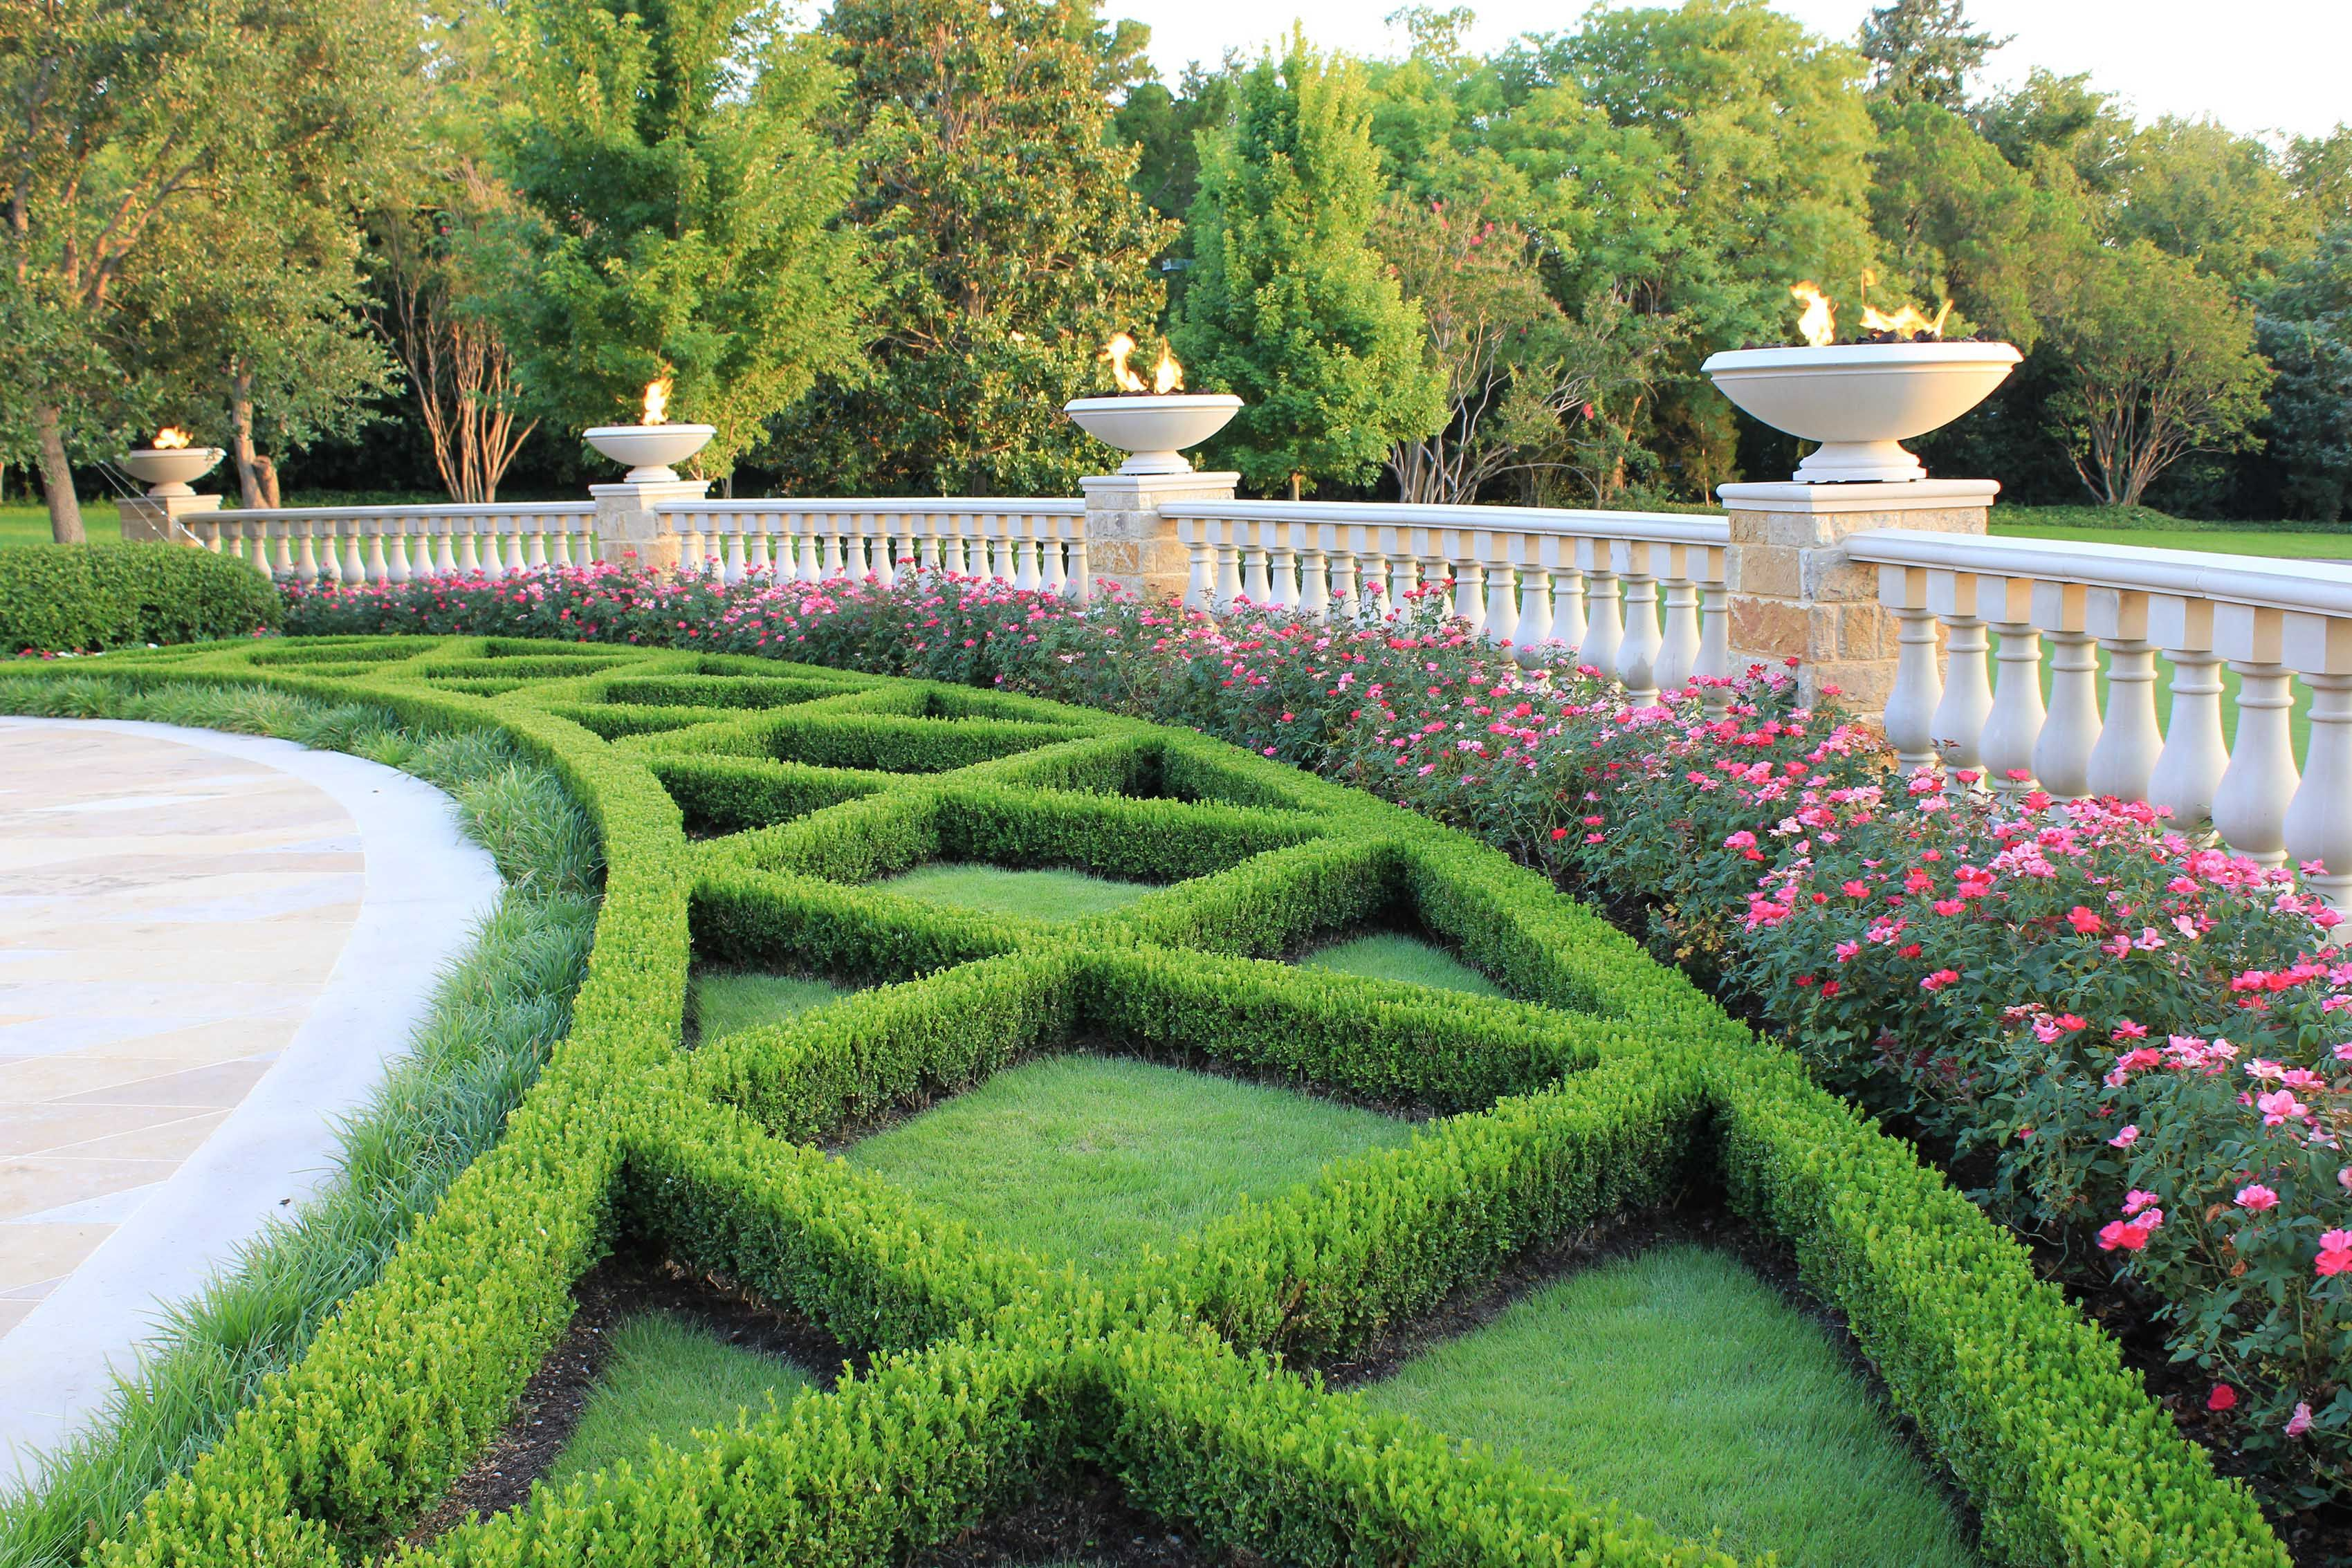 Classic boxwood hedges framed by cast stone ballustrade and fire bowls.  Harold Leidner Landscape Architect, Dallas, Texas